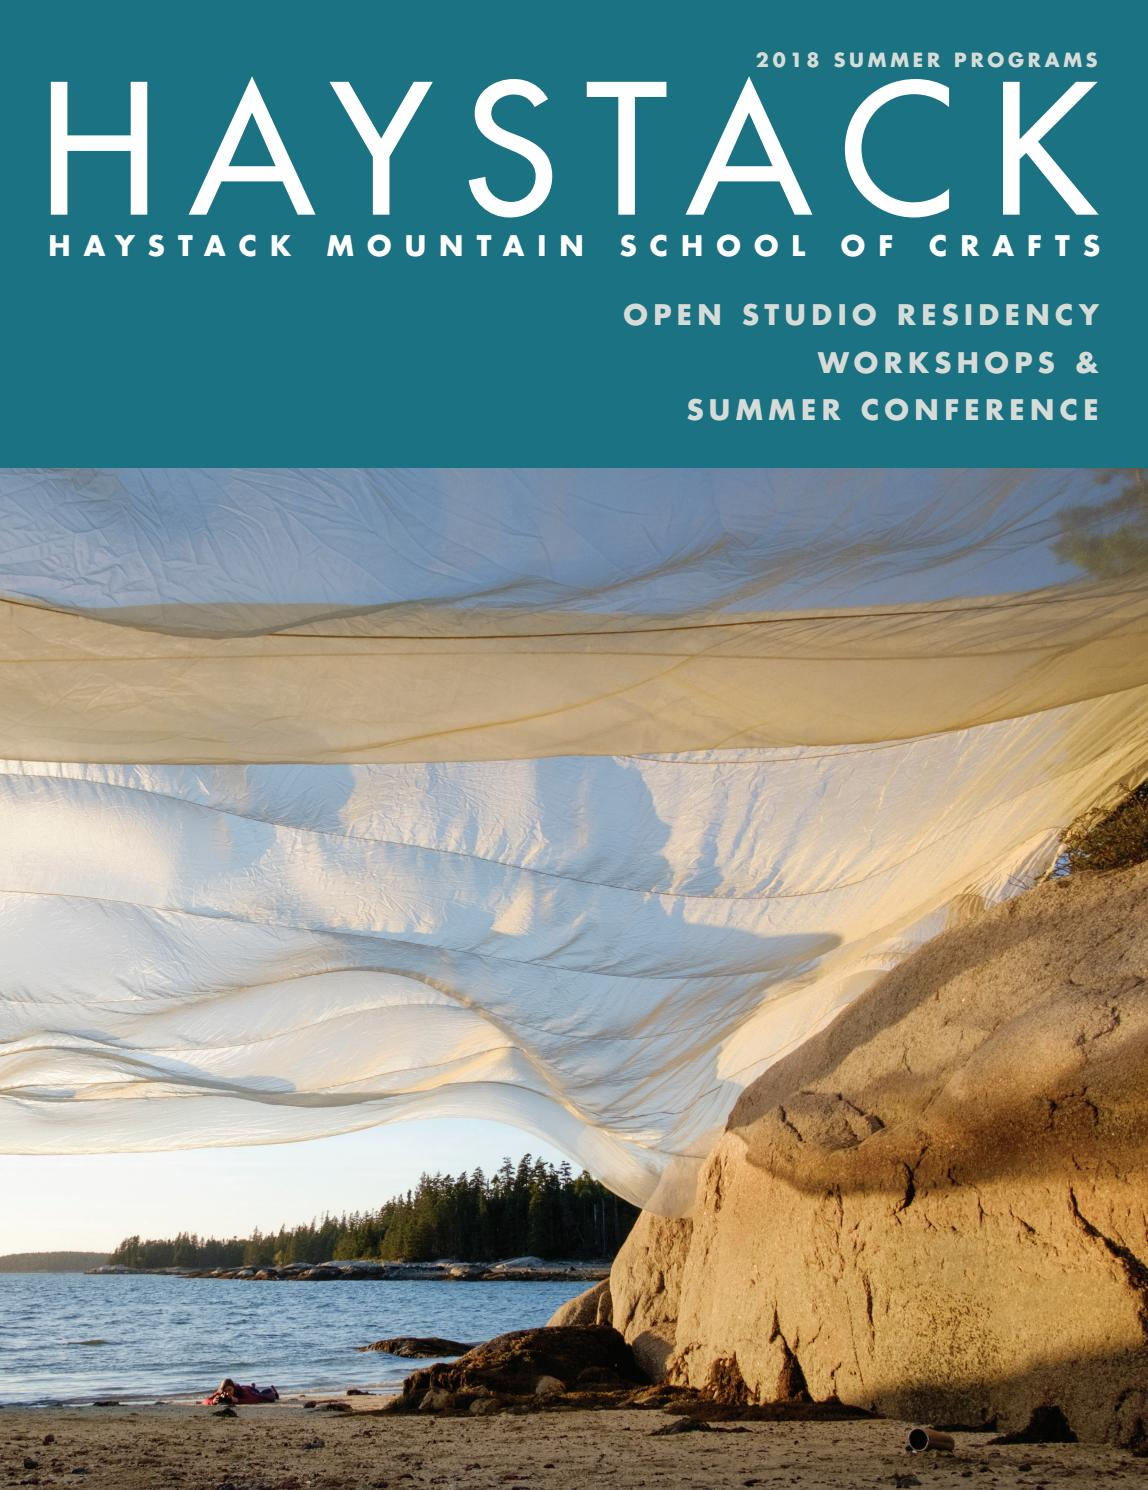 Haystack 2018 Catalog of Summer Programs by Ginger Aldrich - issuu